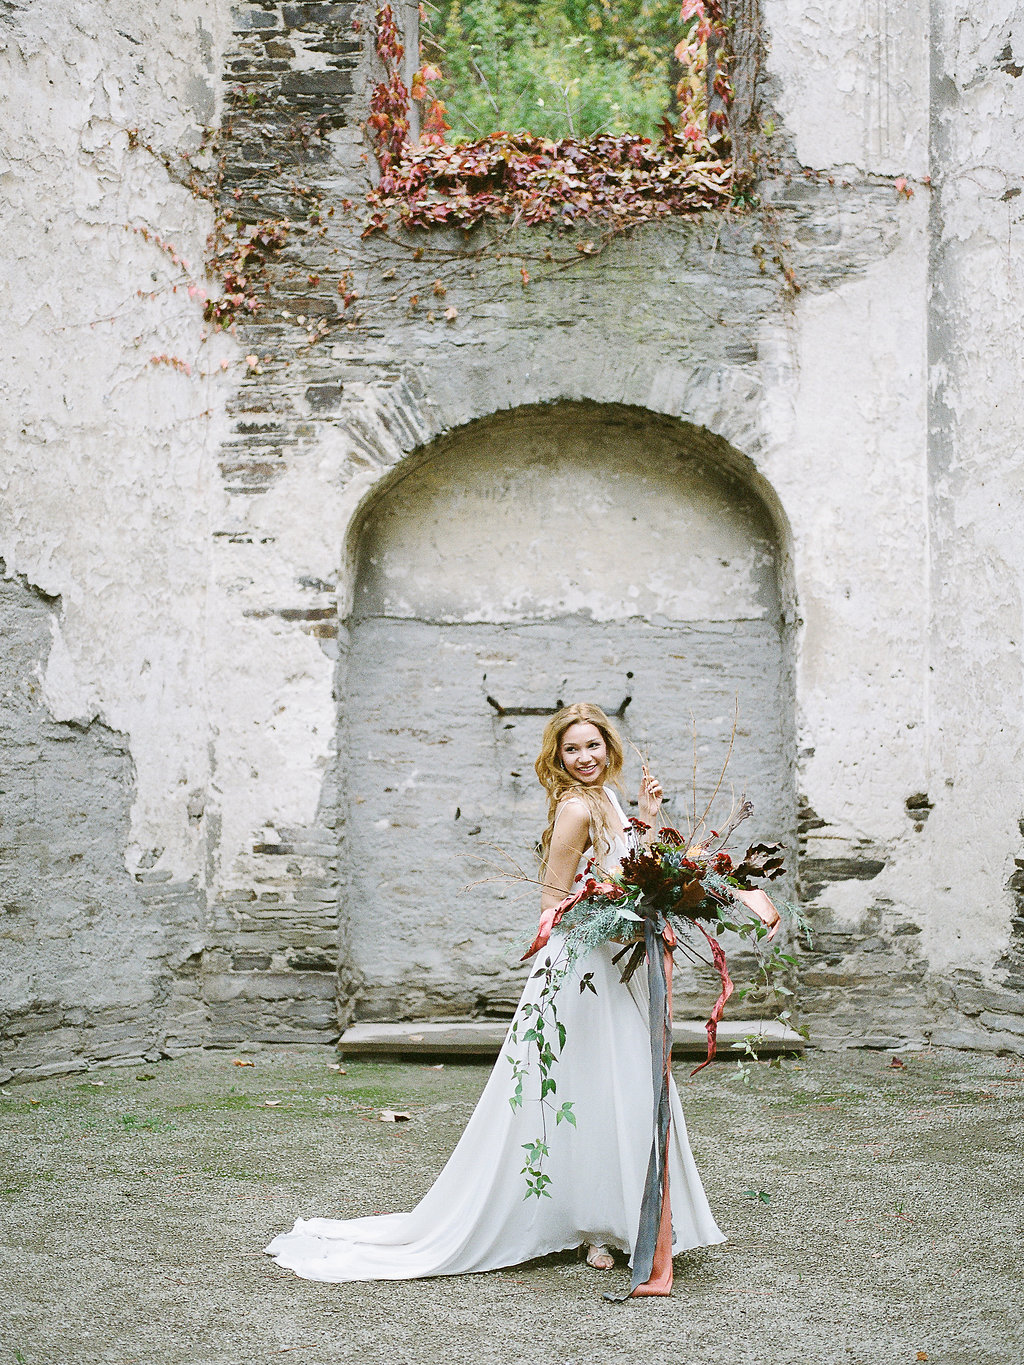 Destination fine art film wedding photographer Tanja Kibogo | autumnal bridal session40.JPG